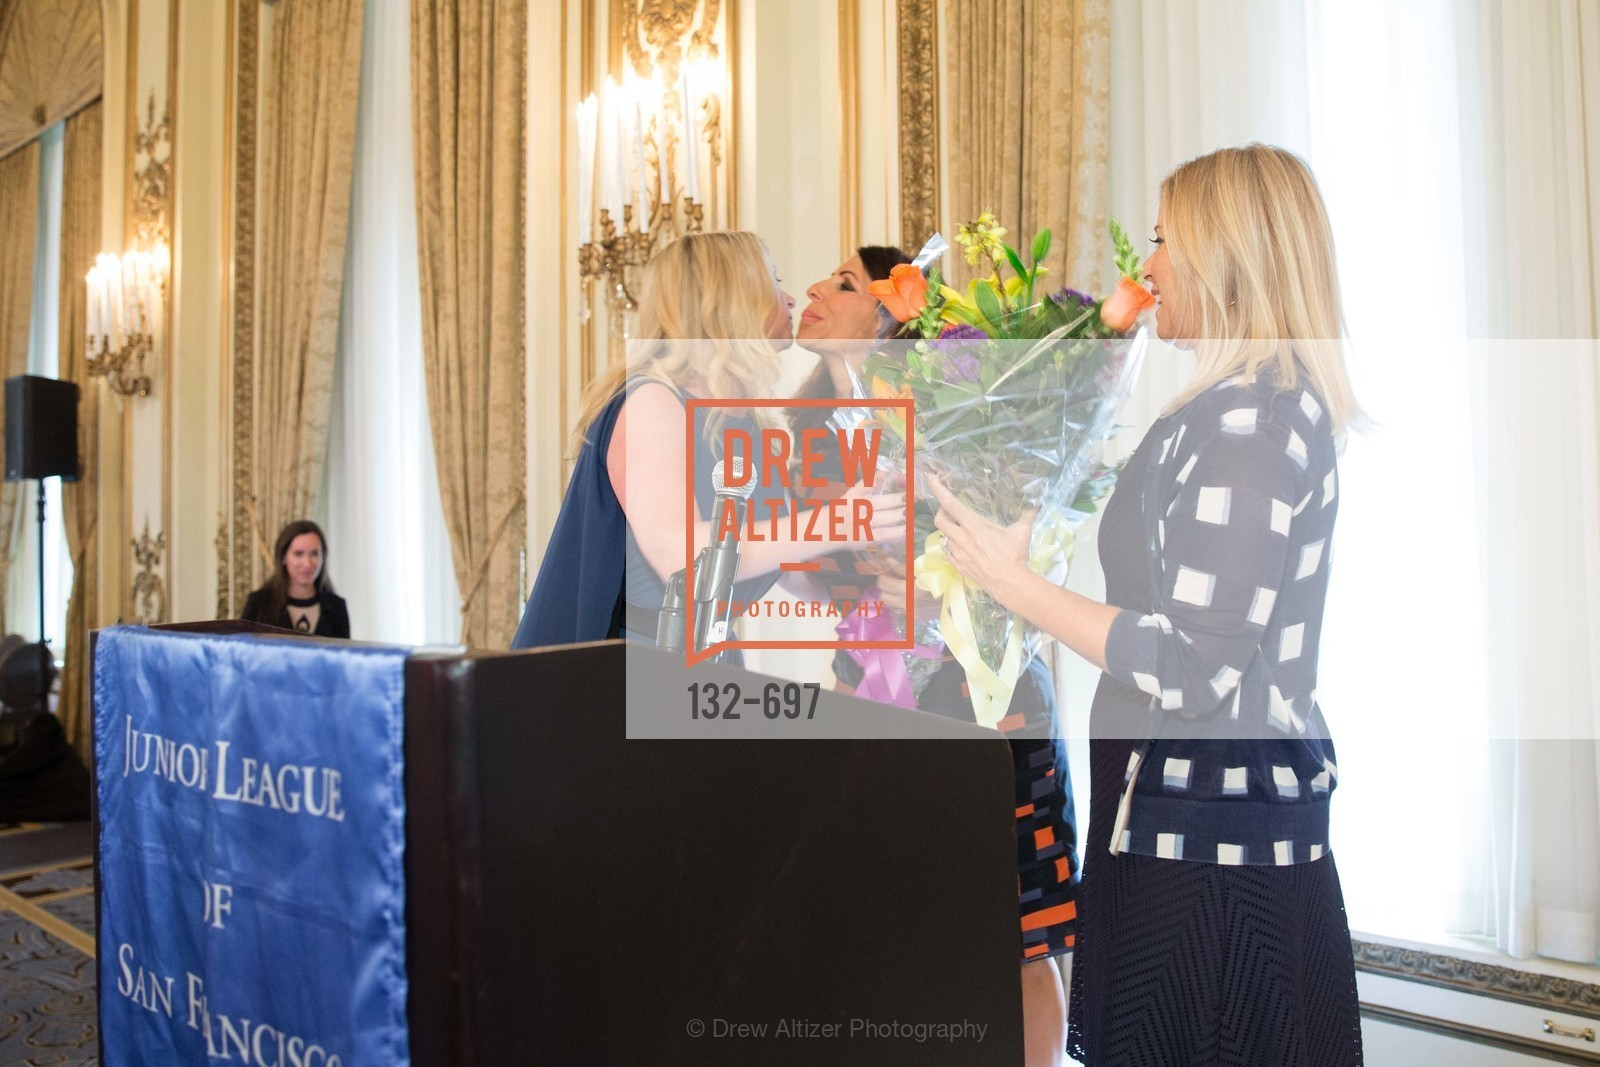 Jennifer Kurrie, Lisa Grotts, Jane Inch, JUNIOR LEAGUE OF SAN FRANCISCO's WATCH Luncheon, US, May 4th, 2015,Drew Altizer, Drew Altizer Photography, full-service agency, private events, San Francisco photographer, photographer california